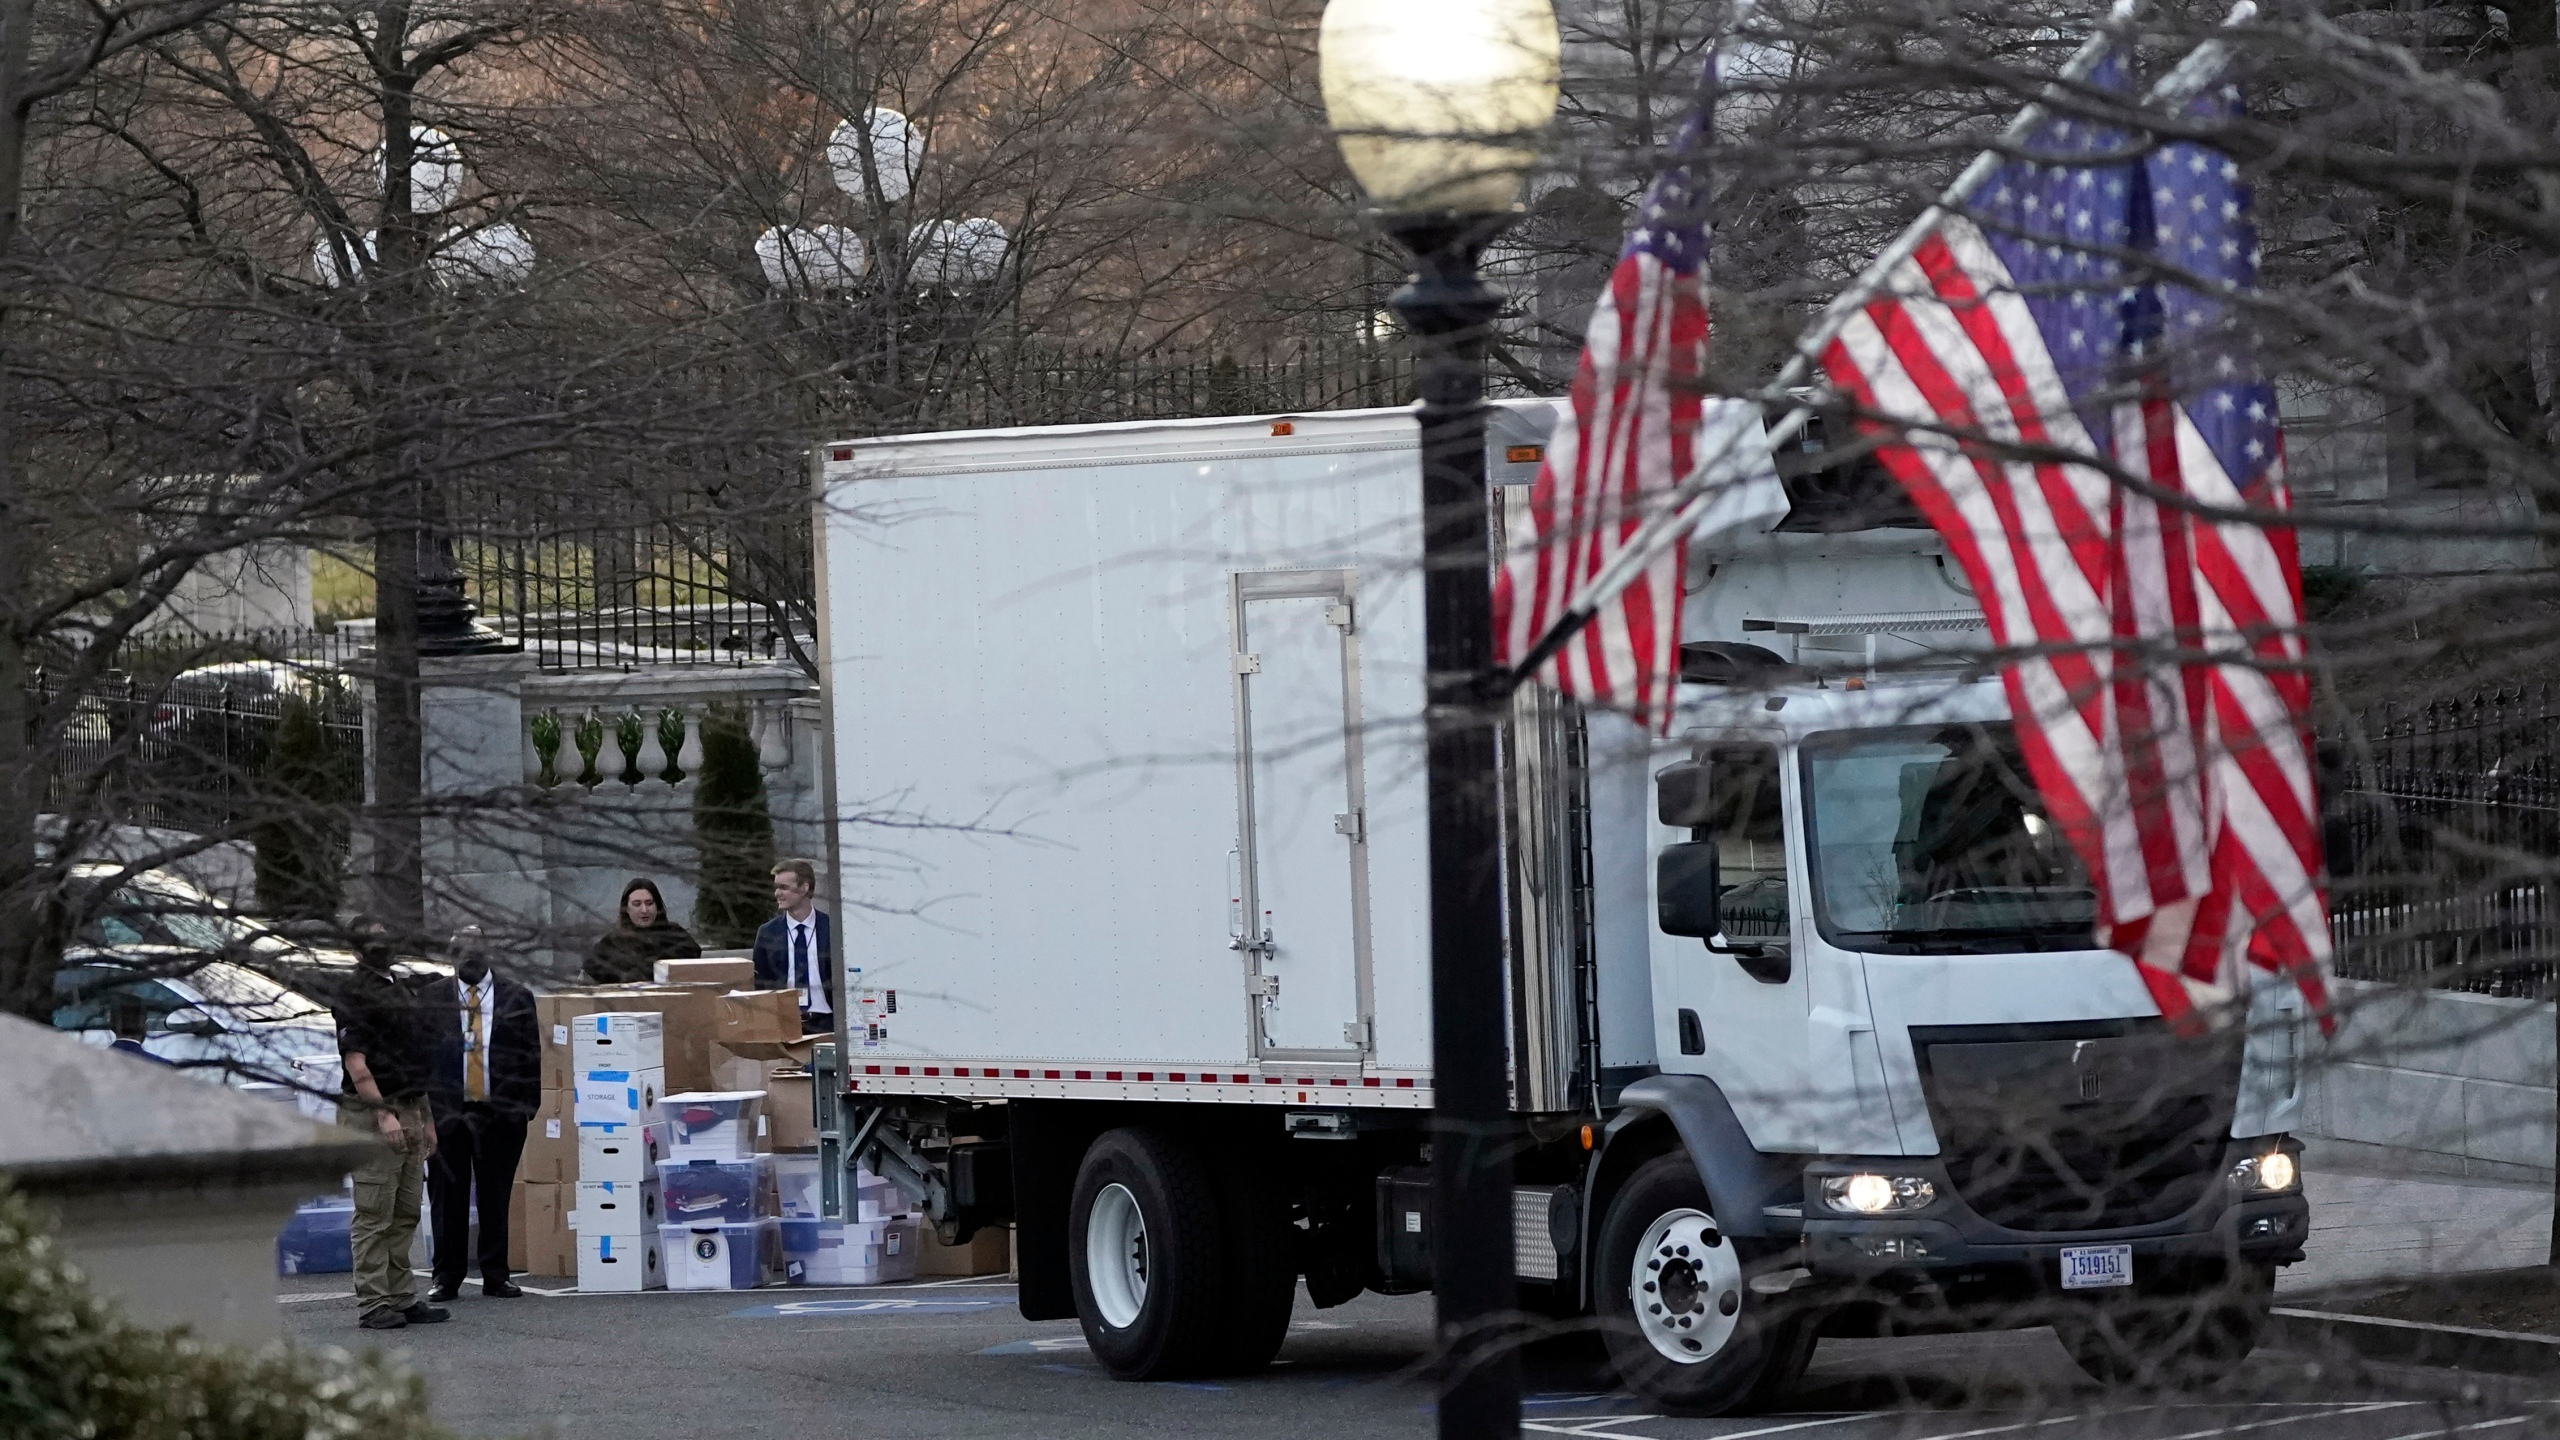 A van arrives to pick up boxes that were moved out of the Eisenhower Executive Office building, inside the White House complex on Jan. 14, 2021, in Washington D.C. (AP Photo/Gerald Herbert)